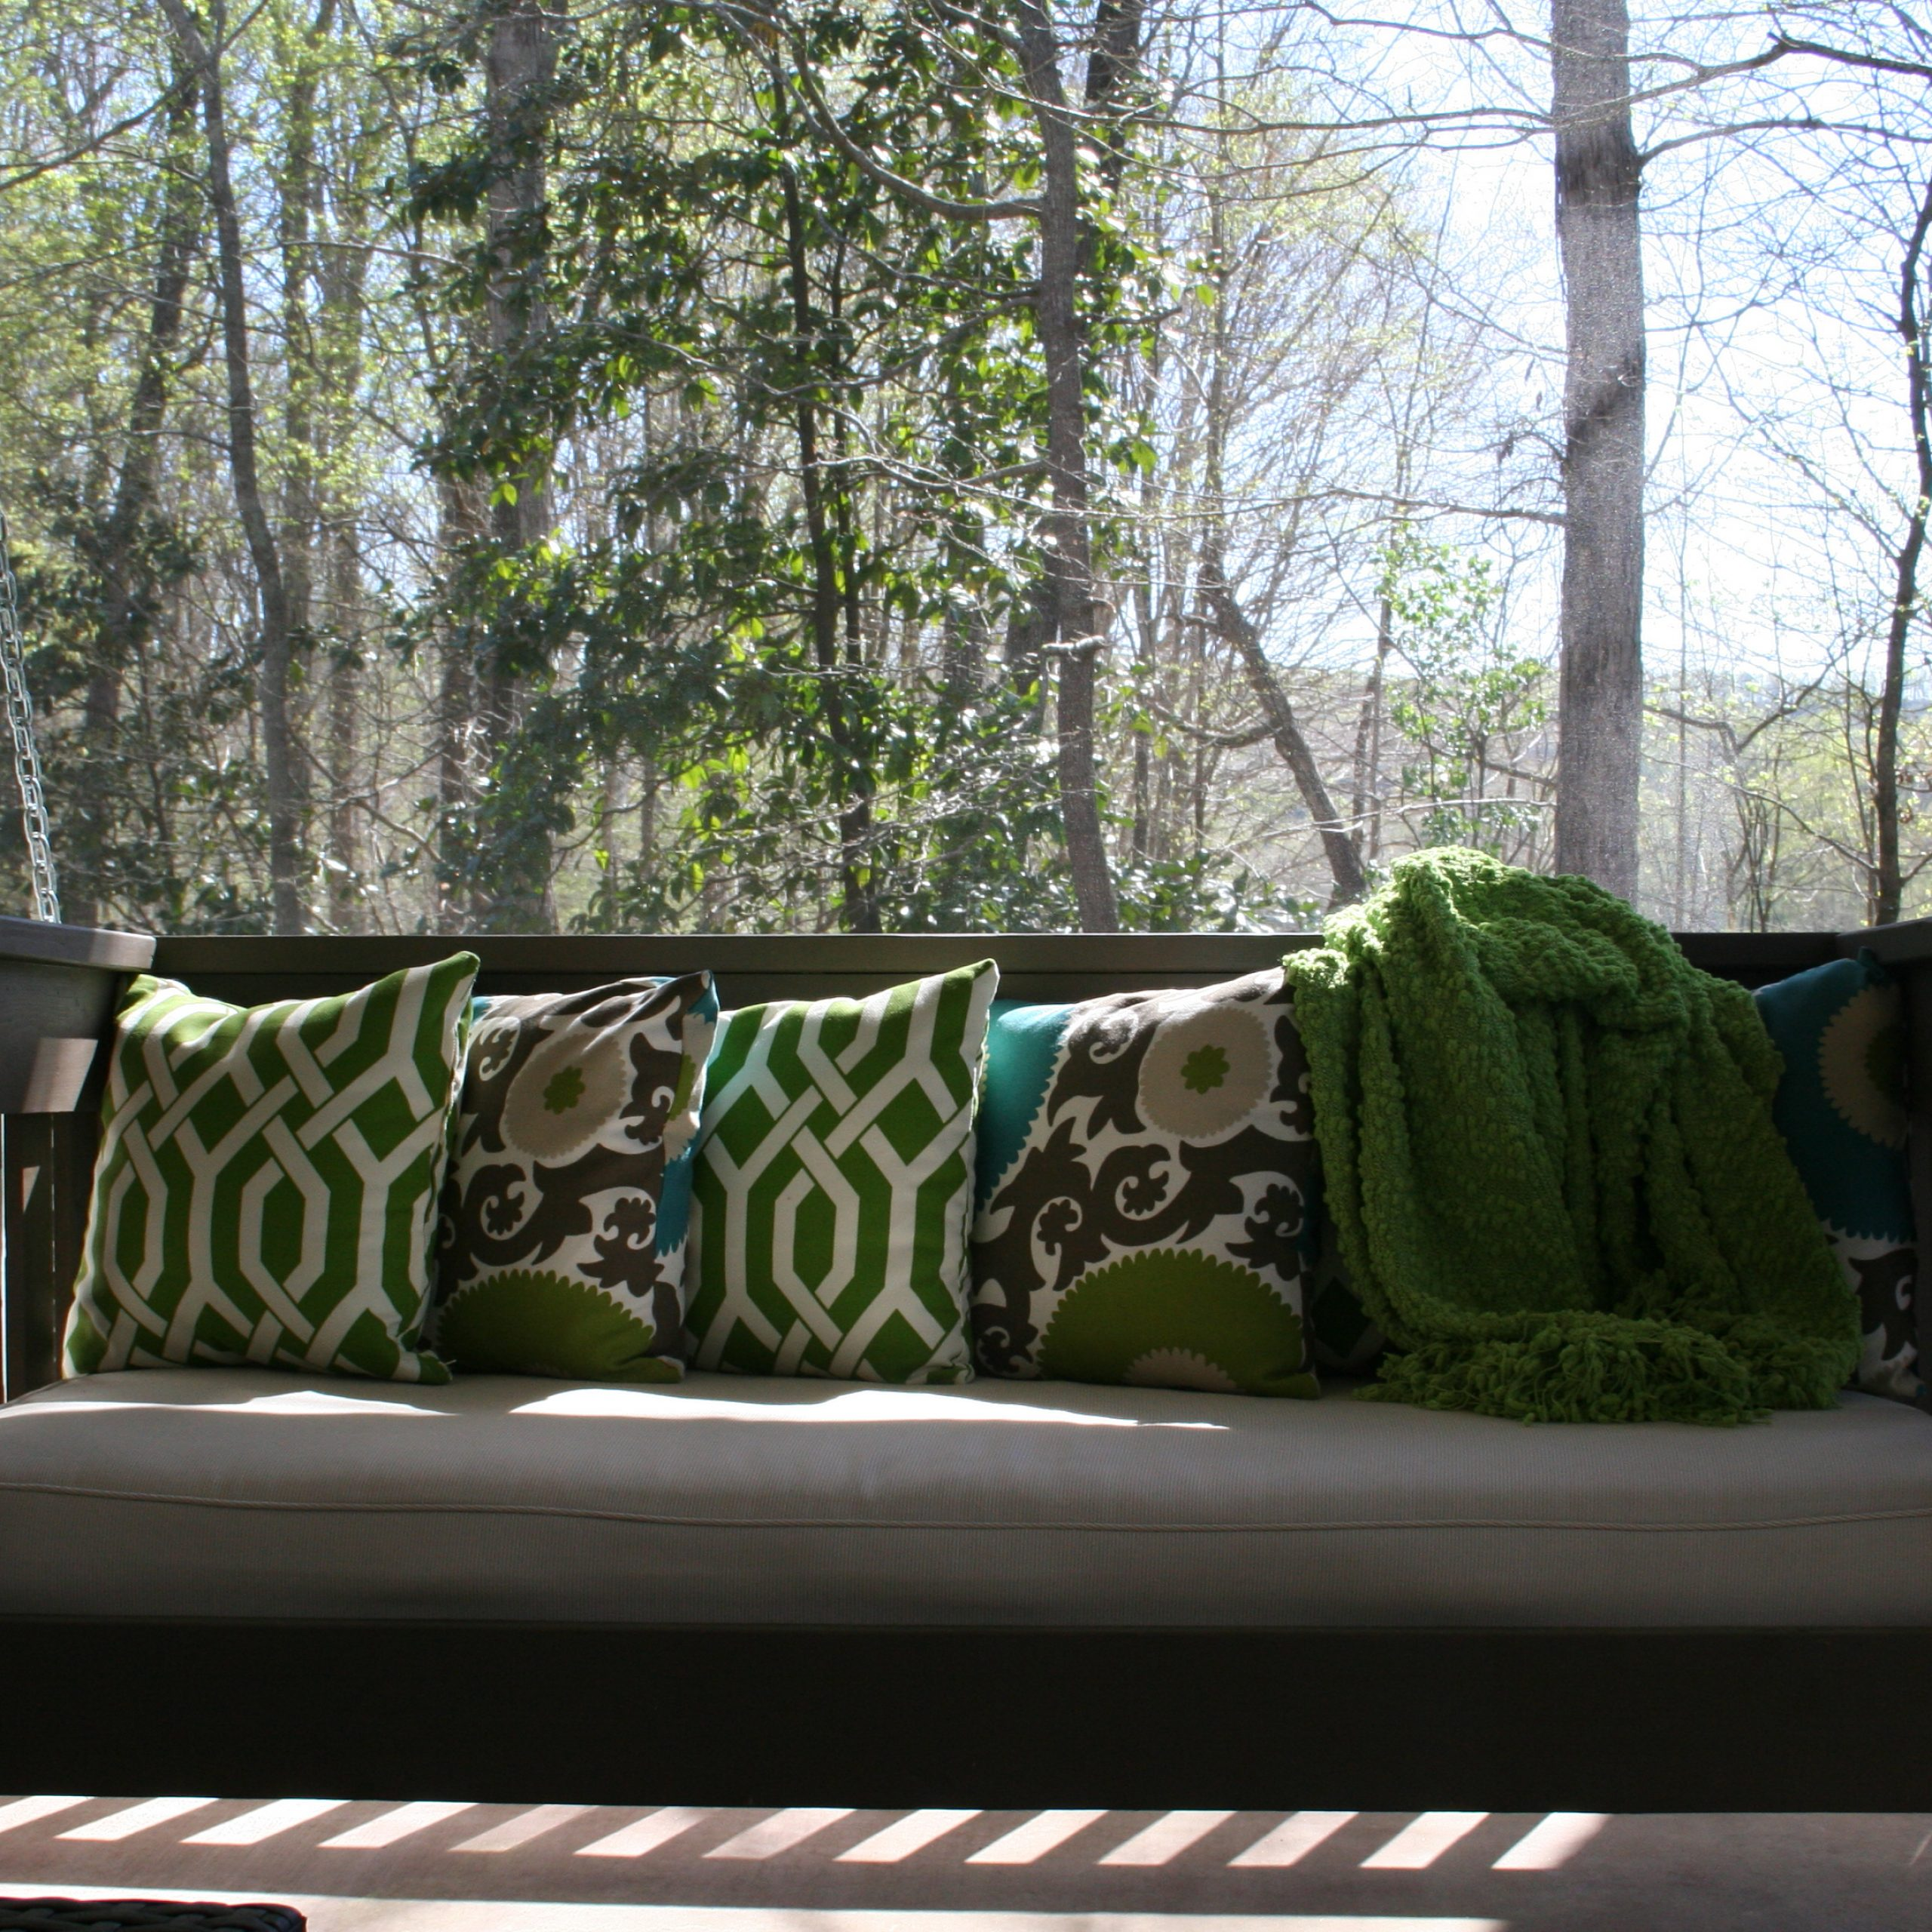 Ana White Regarding Day Bed Porch Swings (View 8 of 30)